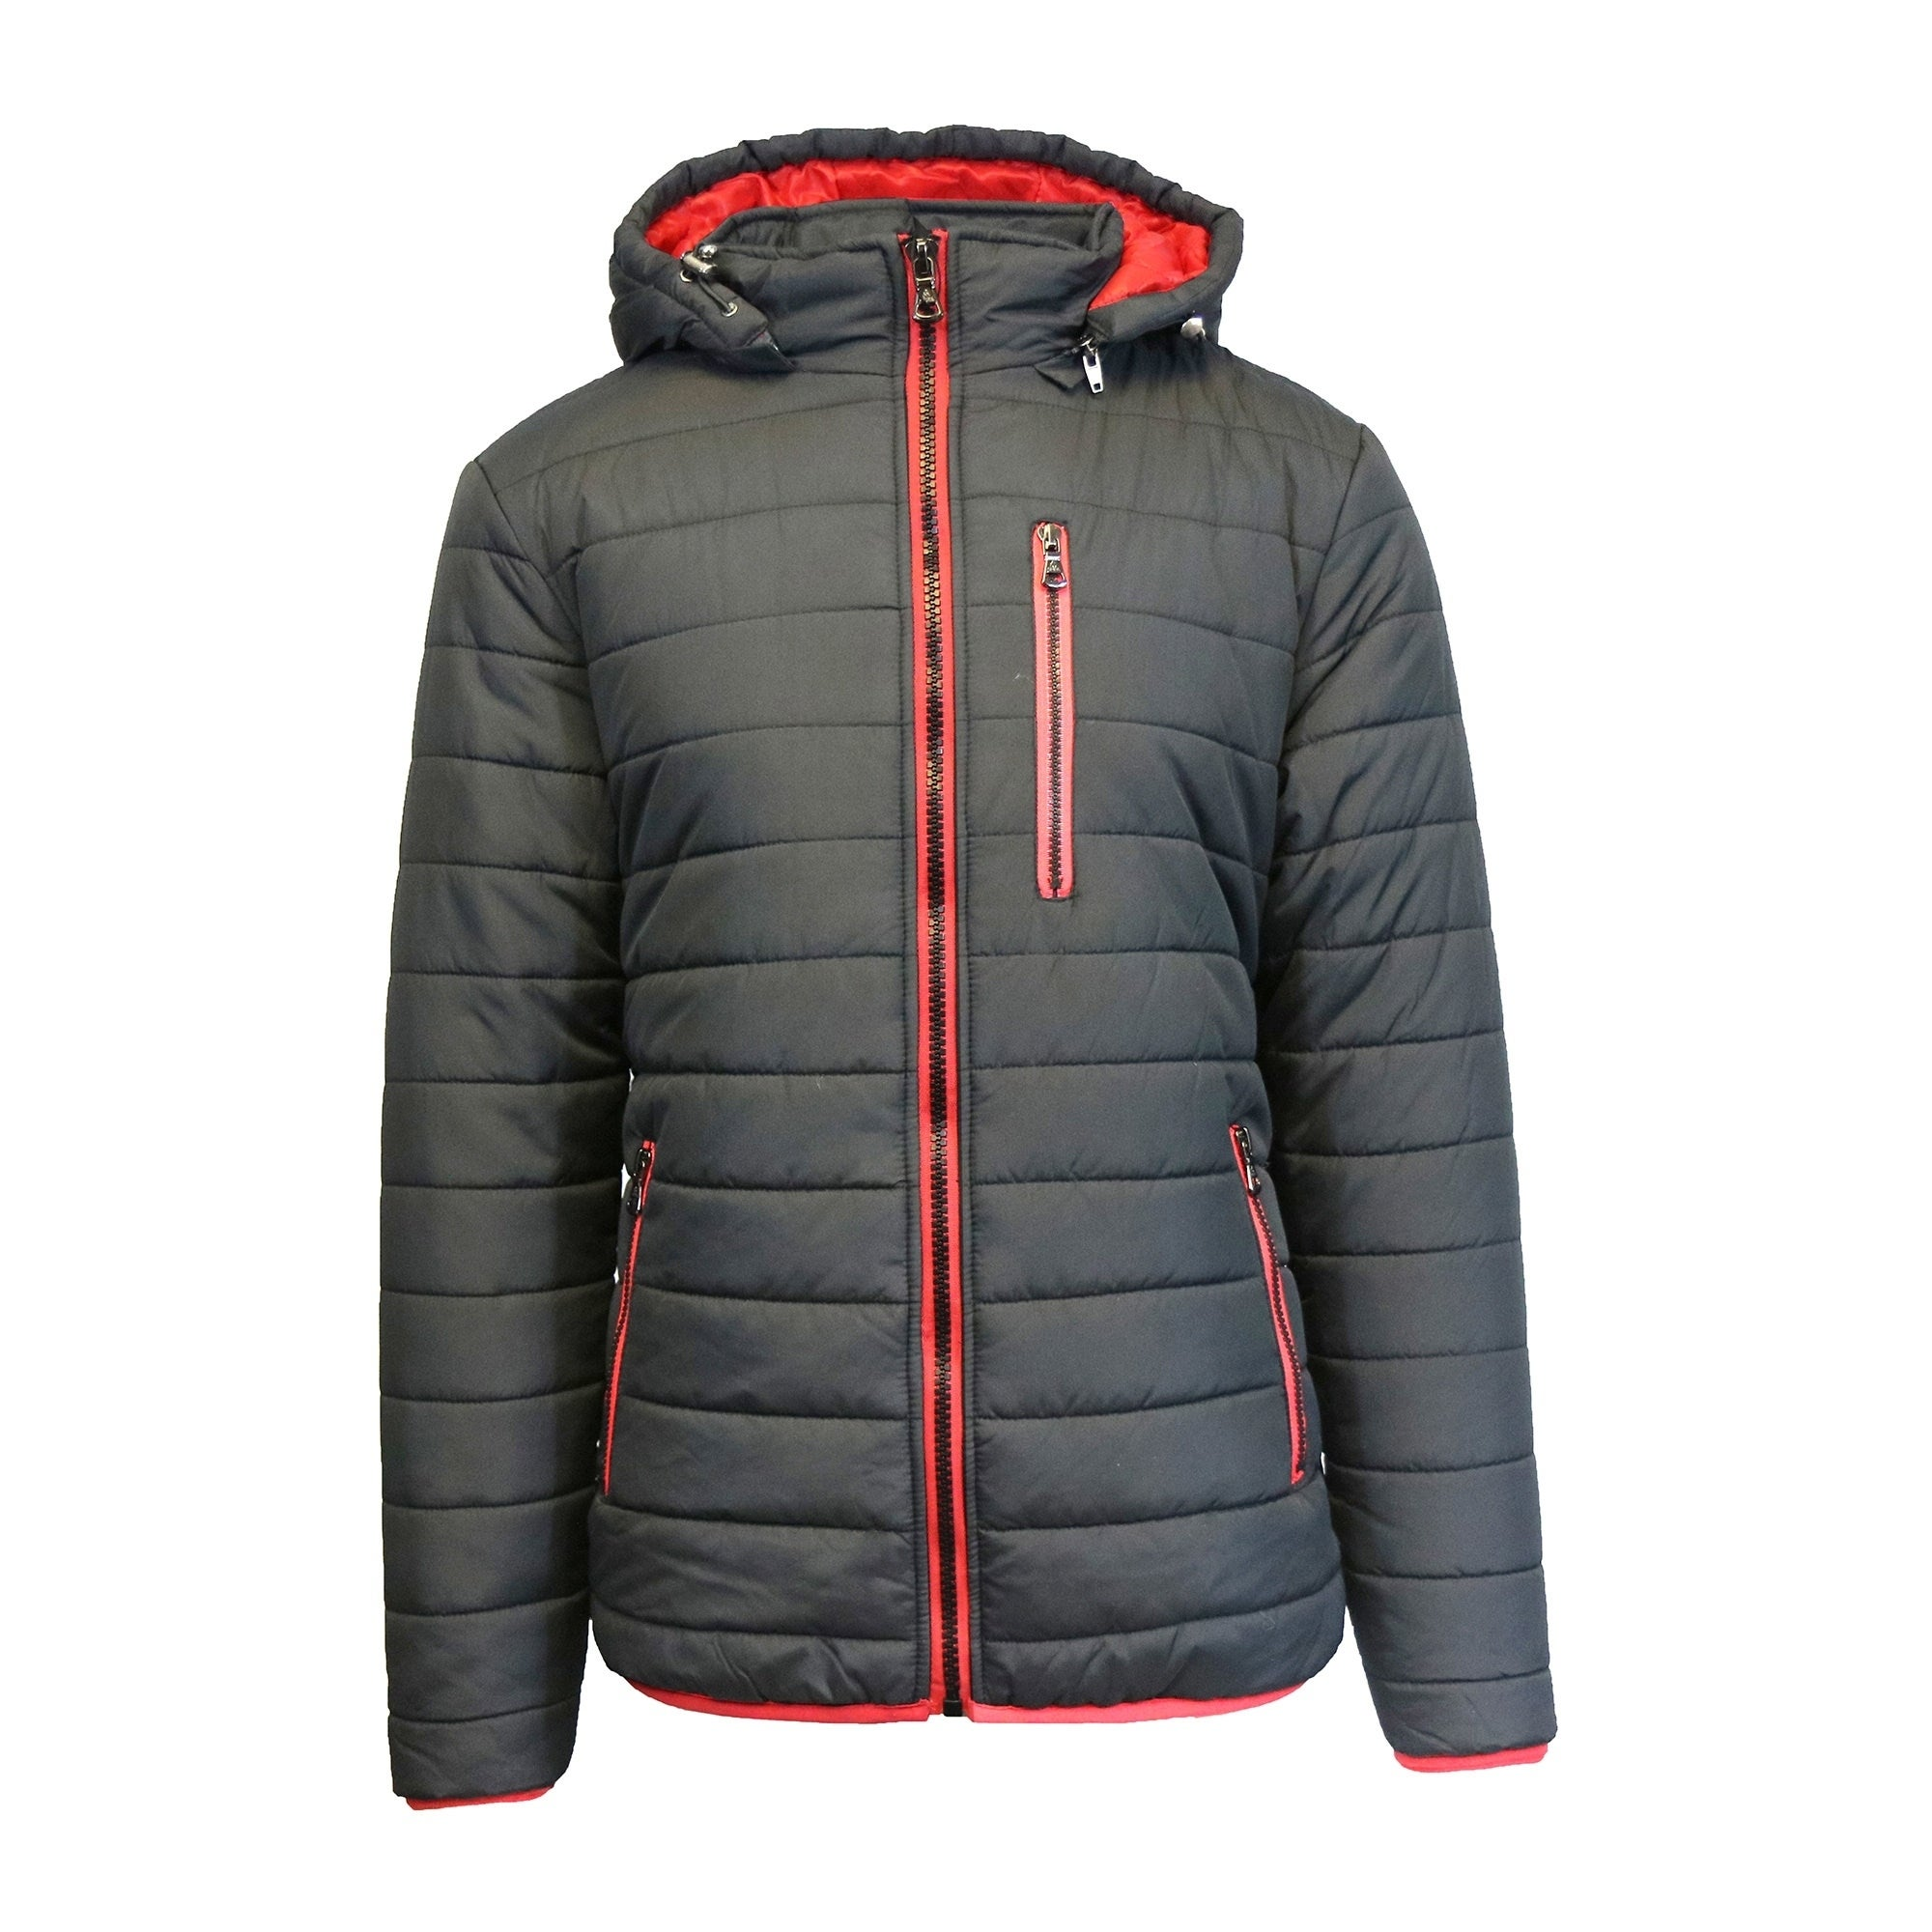 Shop Spire By Galaxy Men s Heavyweight Puffer Jacket with Detachable Hood -  On Sale - Free Shipping Today - Overstock - 19457181 7755451bd